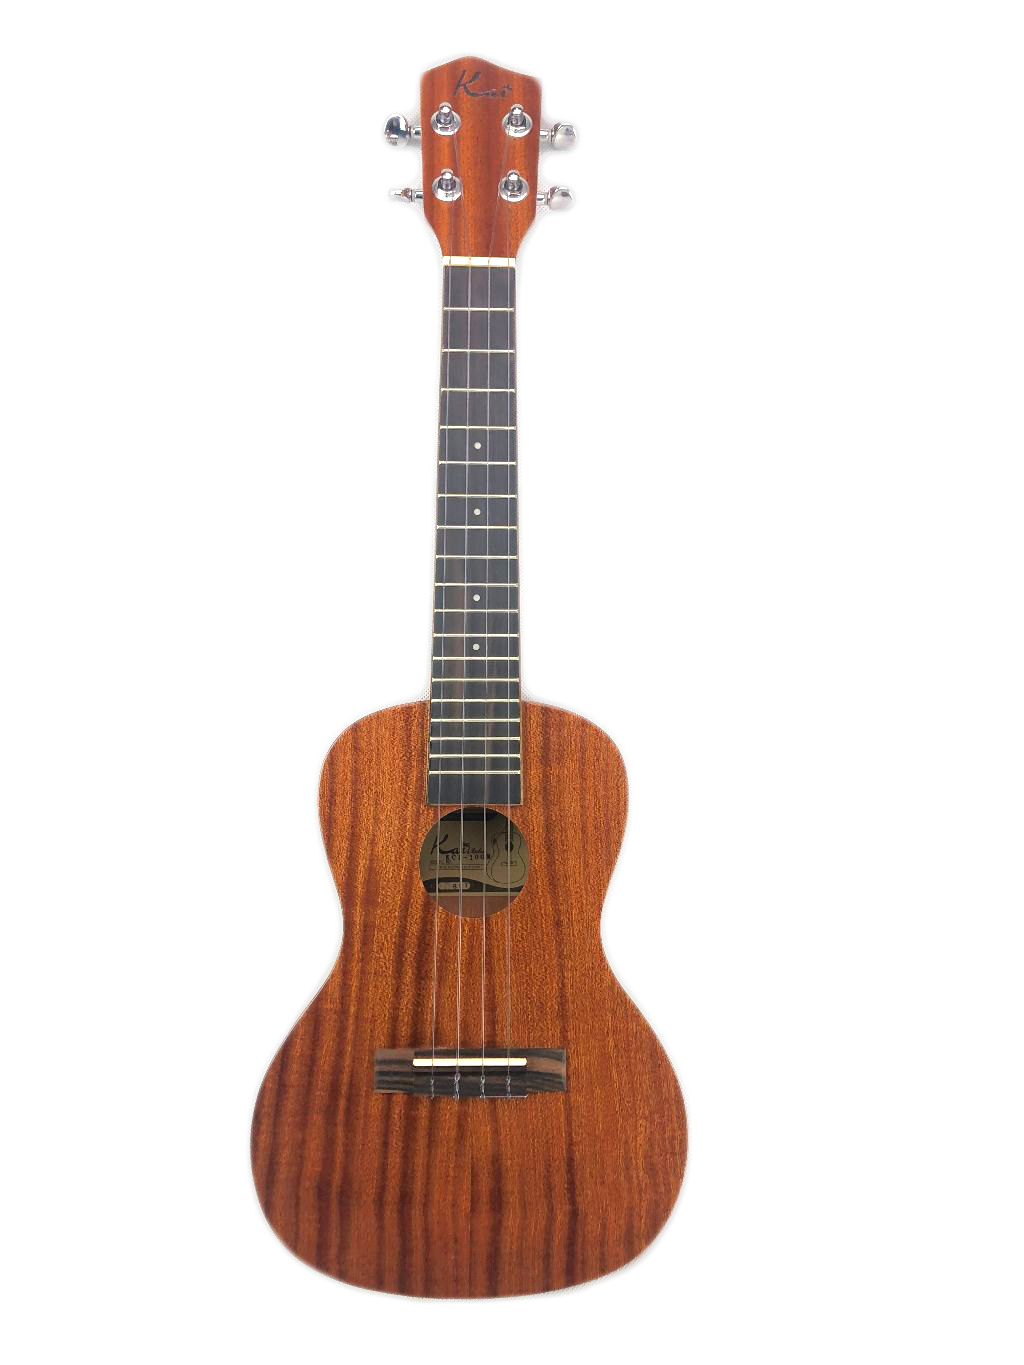 Kai Mahogany Concert Ukulele Solid Top, Sound Port, Gig Bag KCI-100M